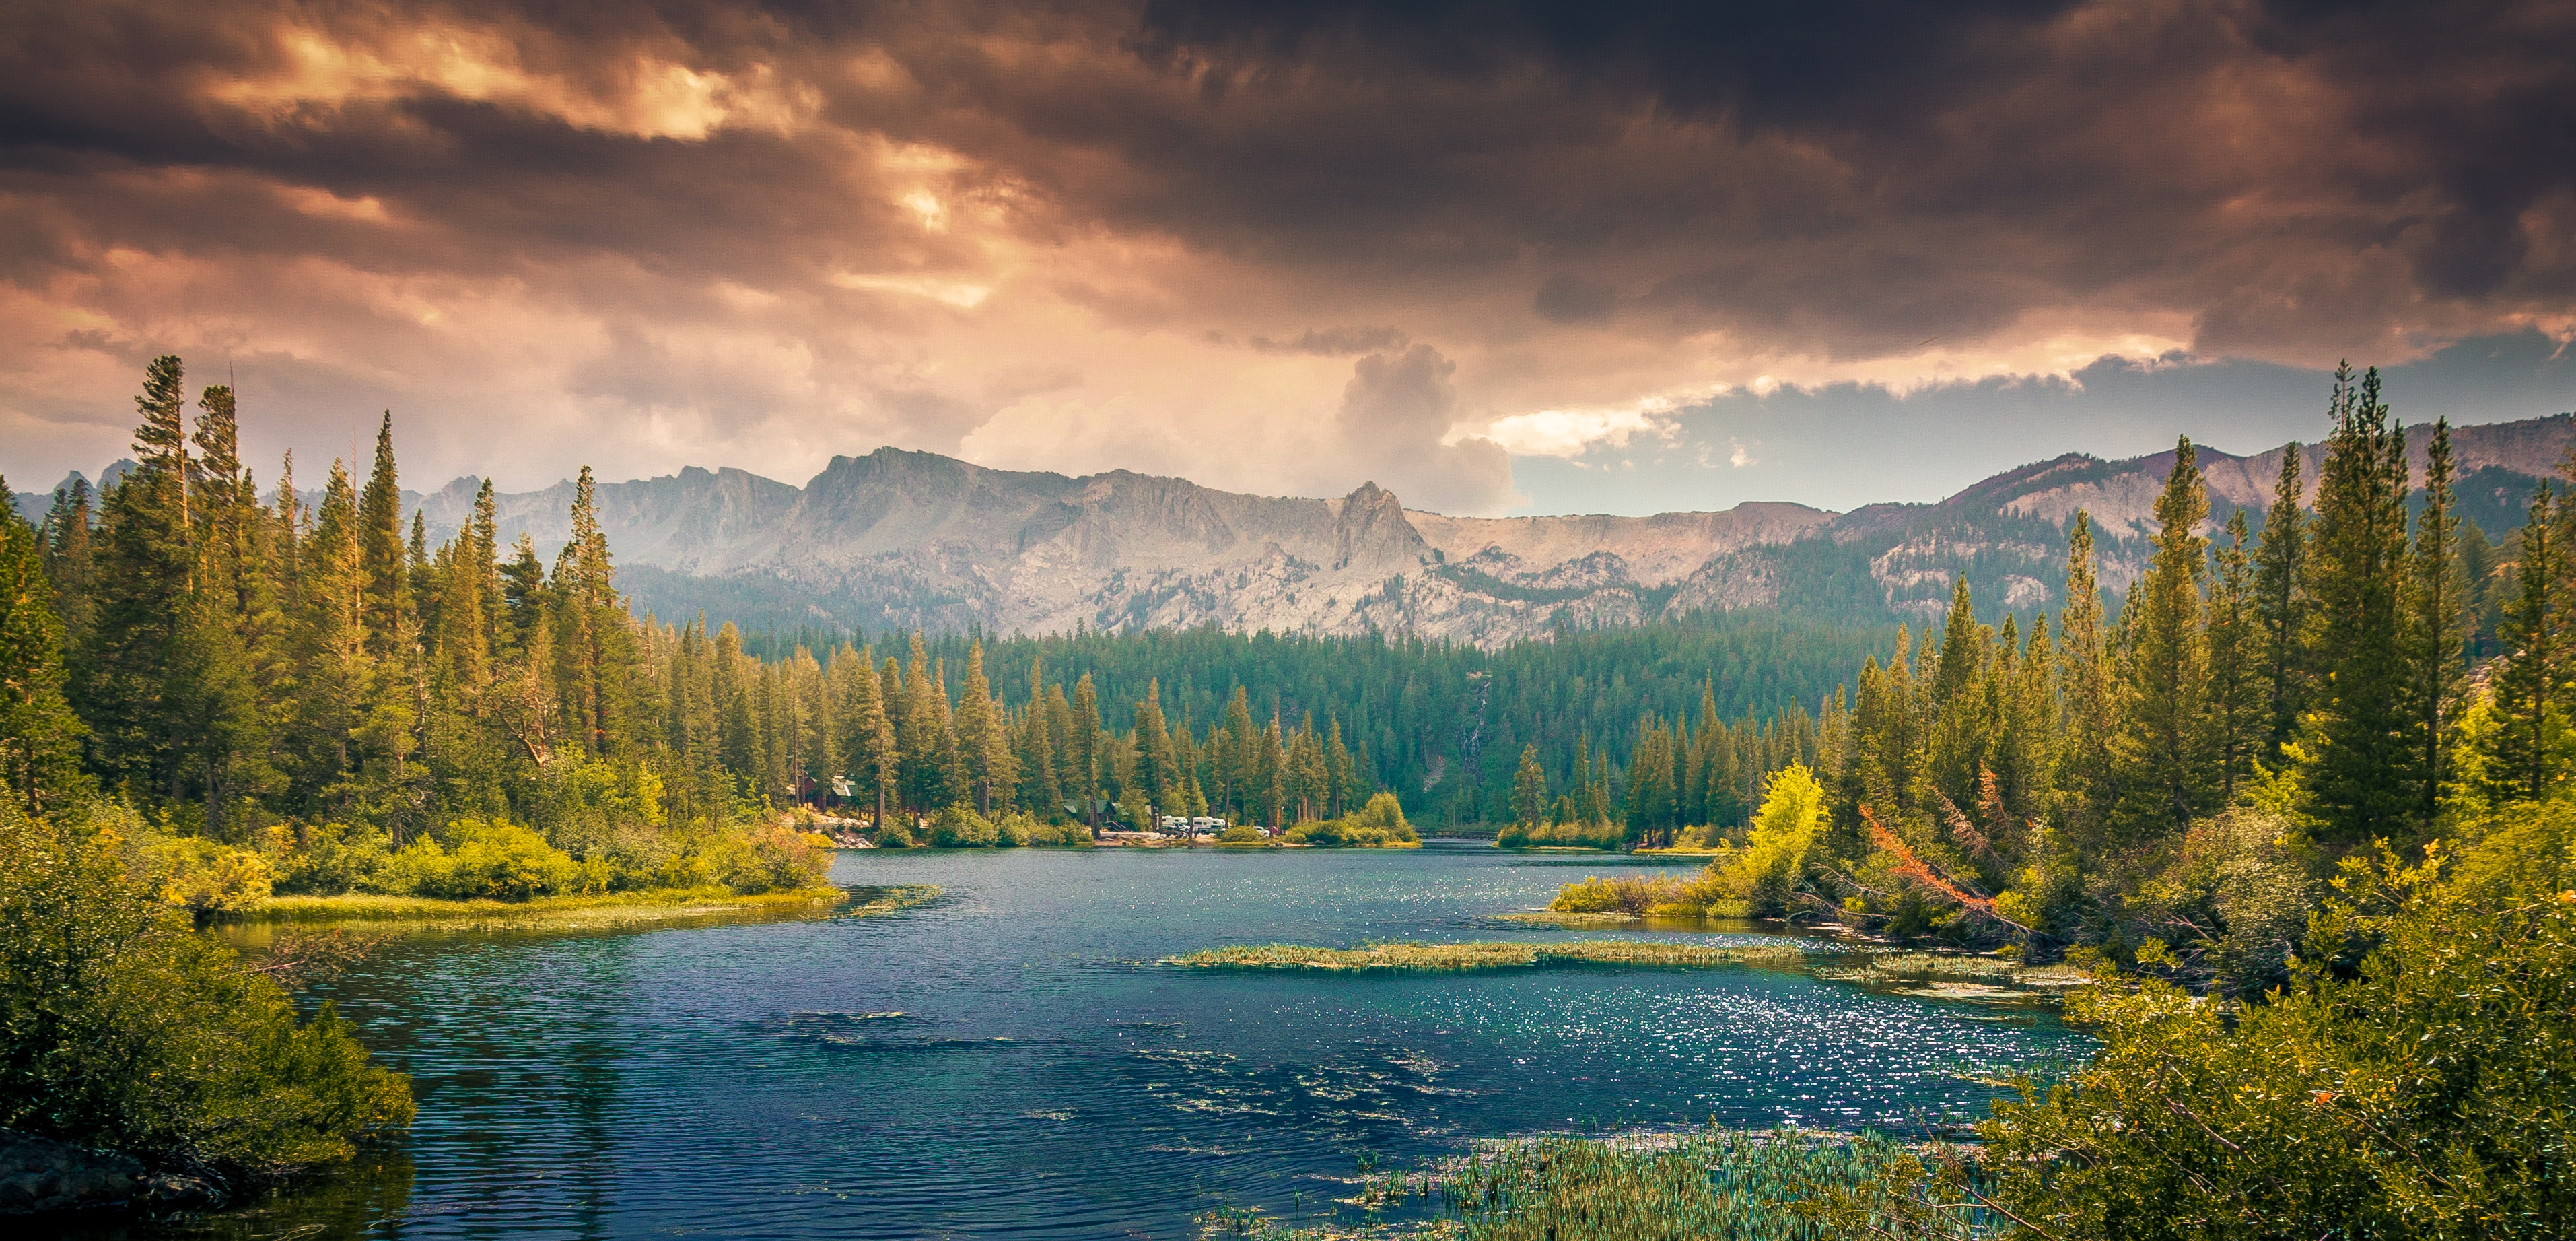 Landscapes With Lake And Clouds Image Free Stock Photo Public Domain Photo Cc0 Images